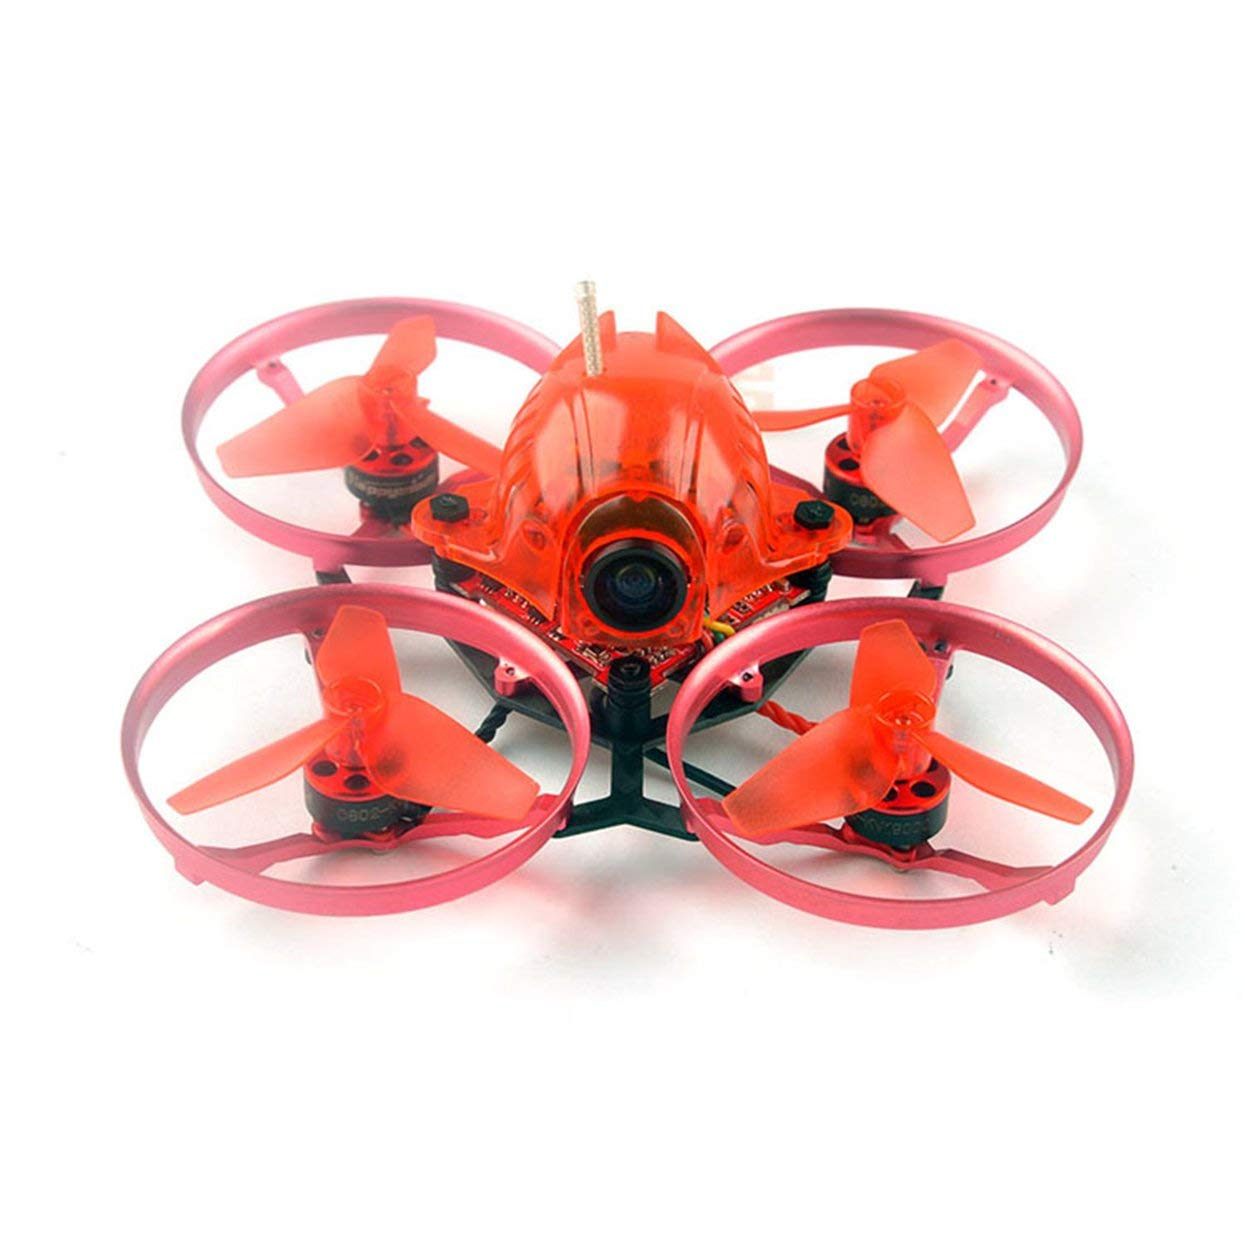 Für Happymodel Snapper7 Brushless WhoopI Drei Batterien Flugzeug BNF Micro 75mm FPV Quadcopter 4in1 Crazybee F3 FC Frsky